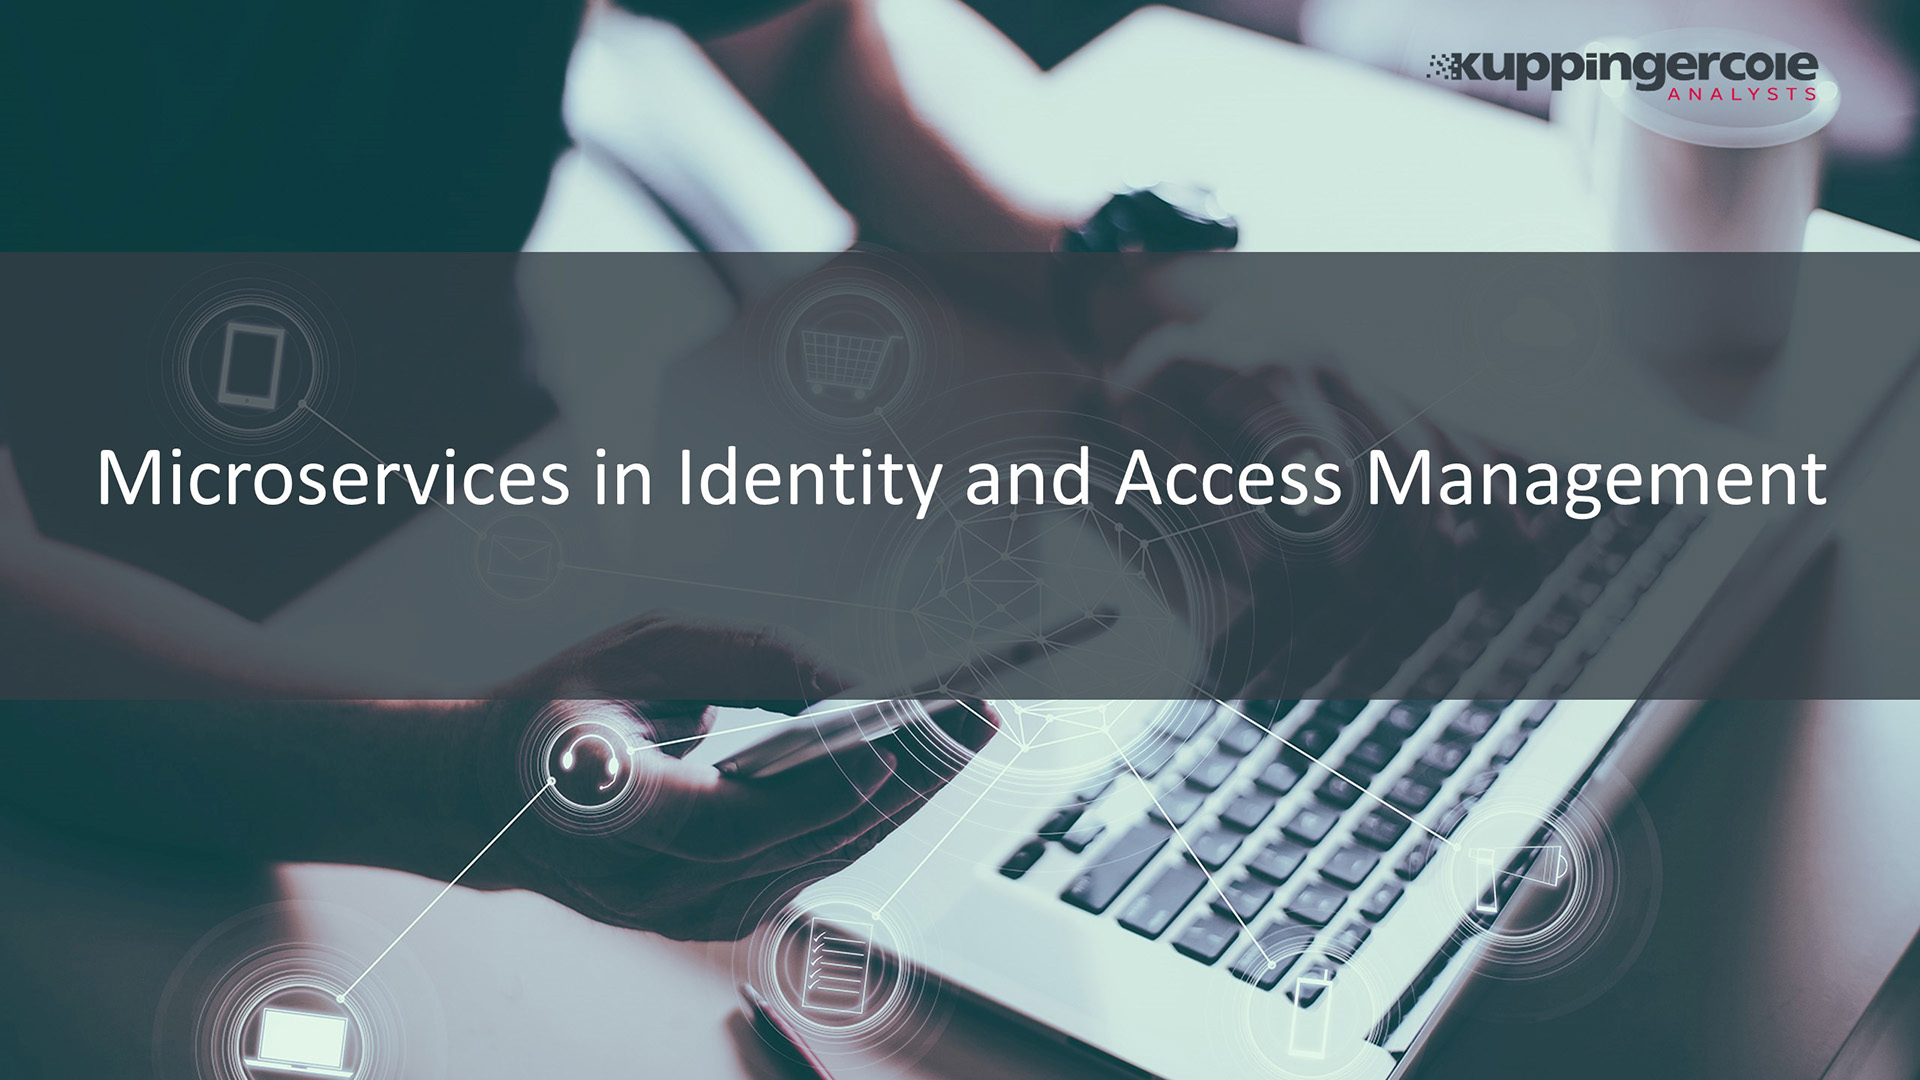 Microservices in Identity and Access Management